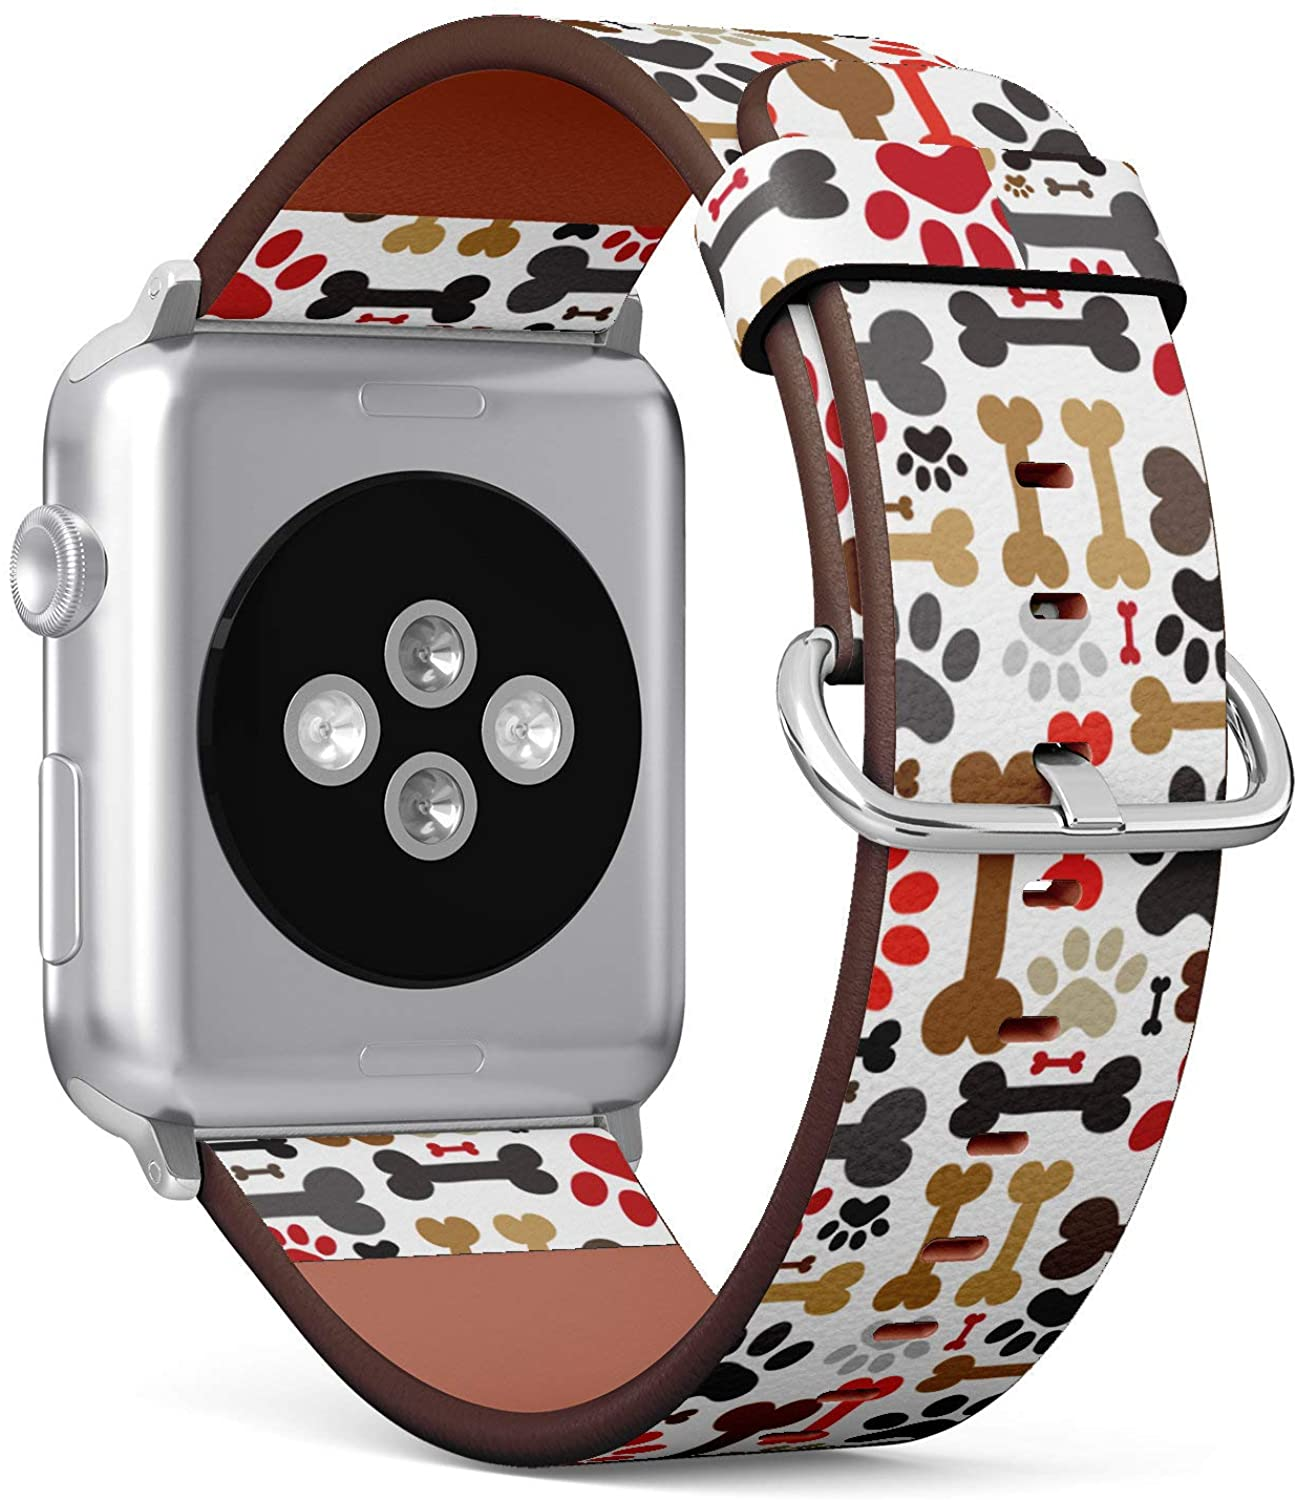 (Cute Pattern of Dogs Paws and Bones) Patterned Leather Wristband Strap Compatible with Apple Watch Series 4/3/2/1 gen,Replacement of iWatch 38mm / 40mm Bands